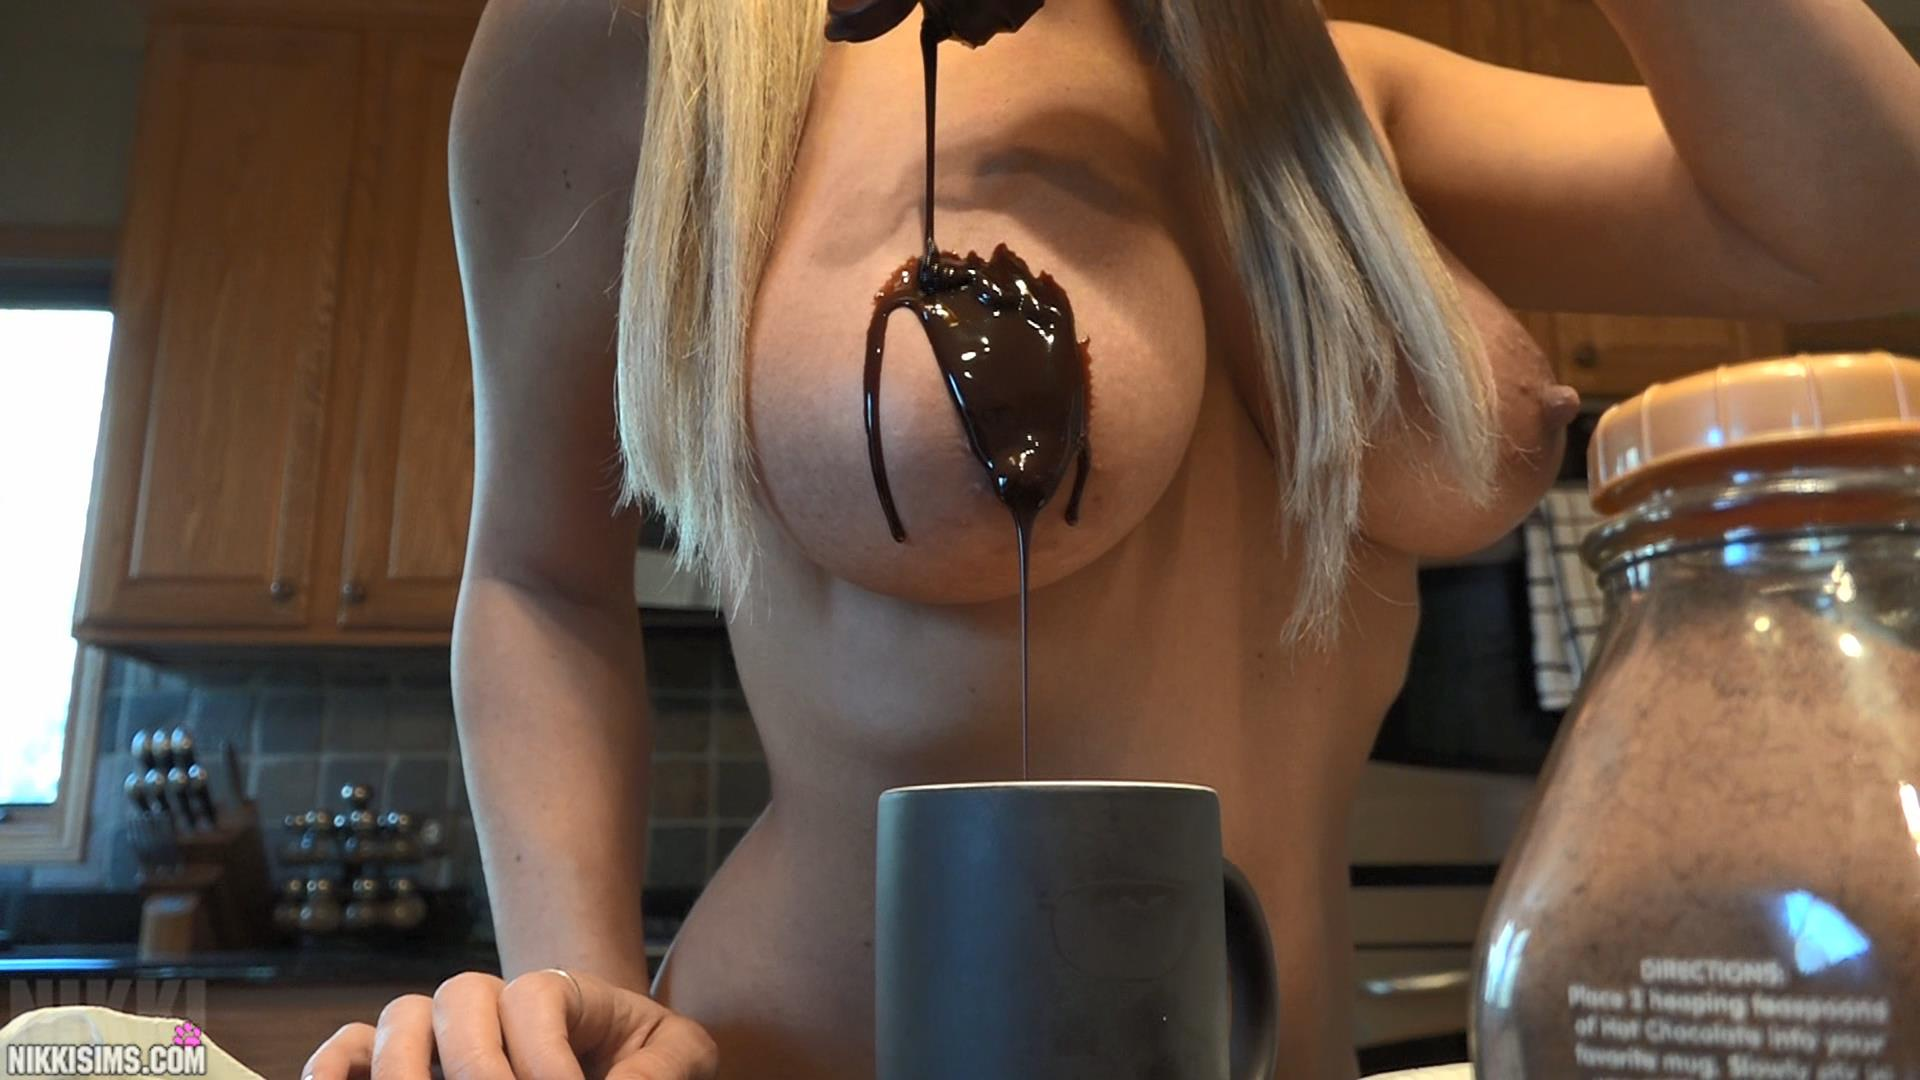 Boob chocolate picture video